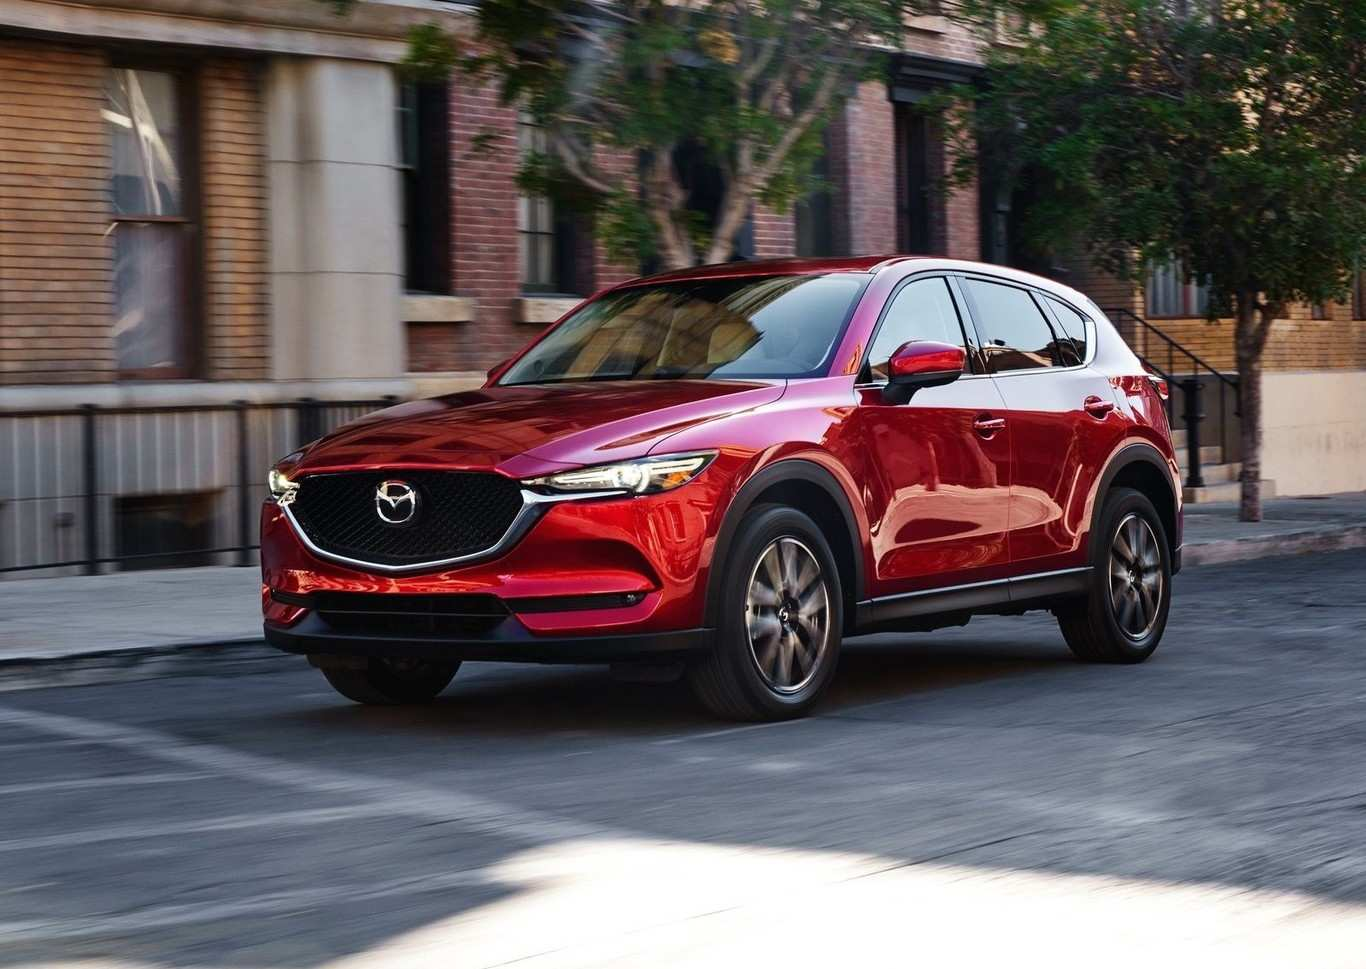 93 All New Precio Del Mazda 2019 Redesign And Review